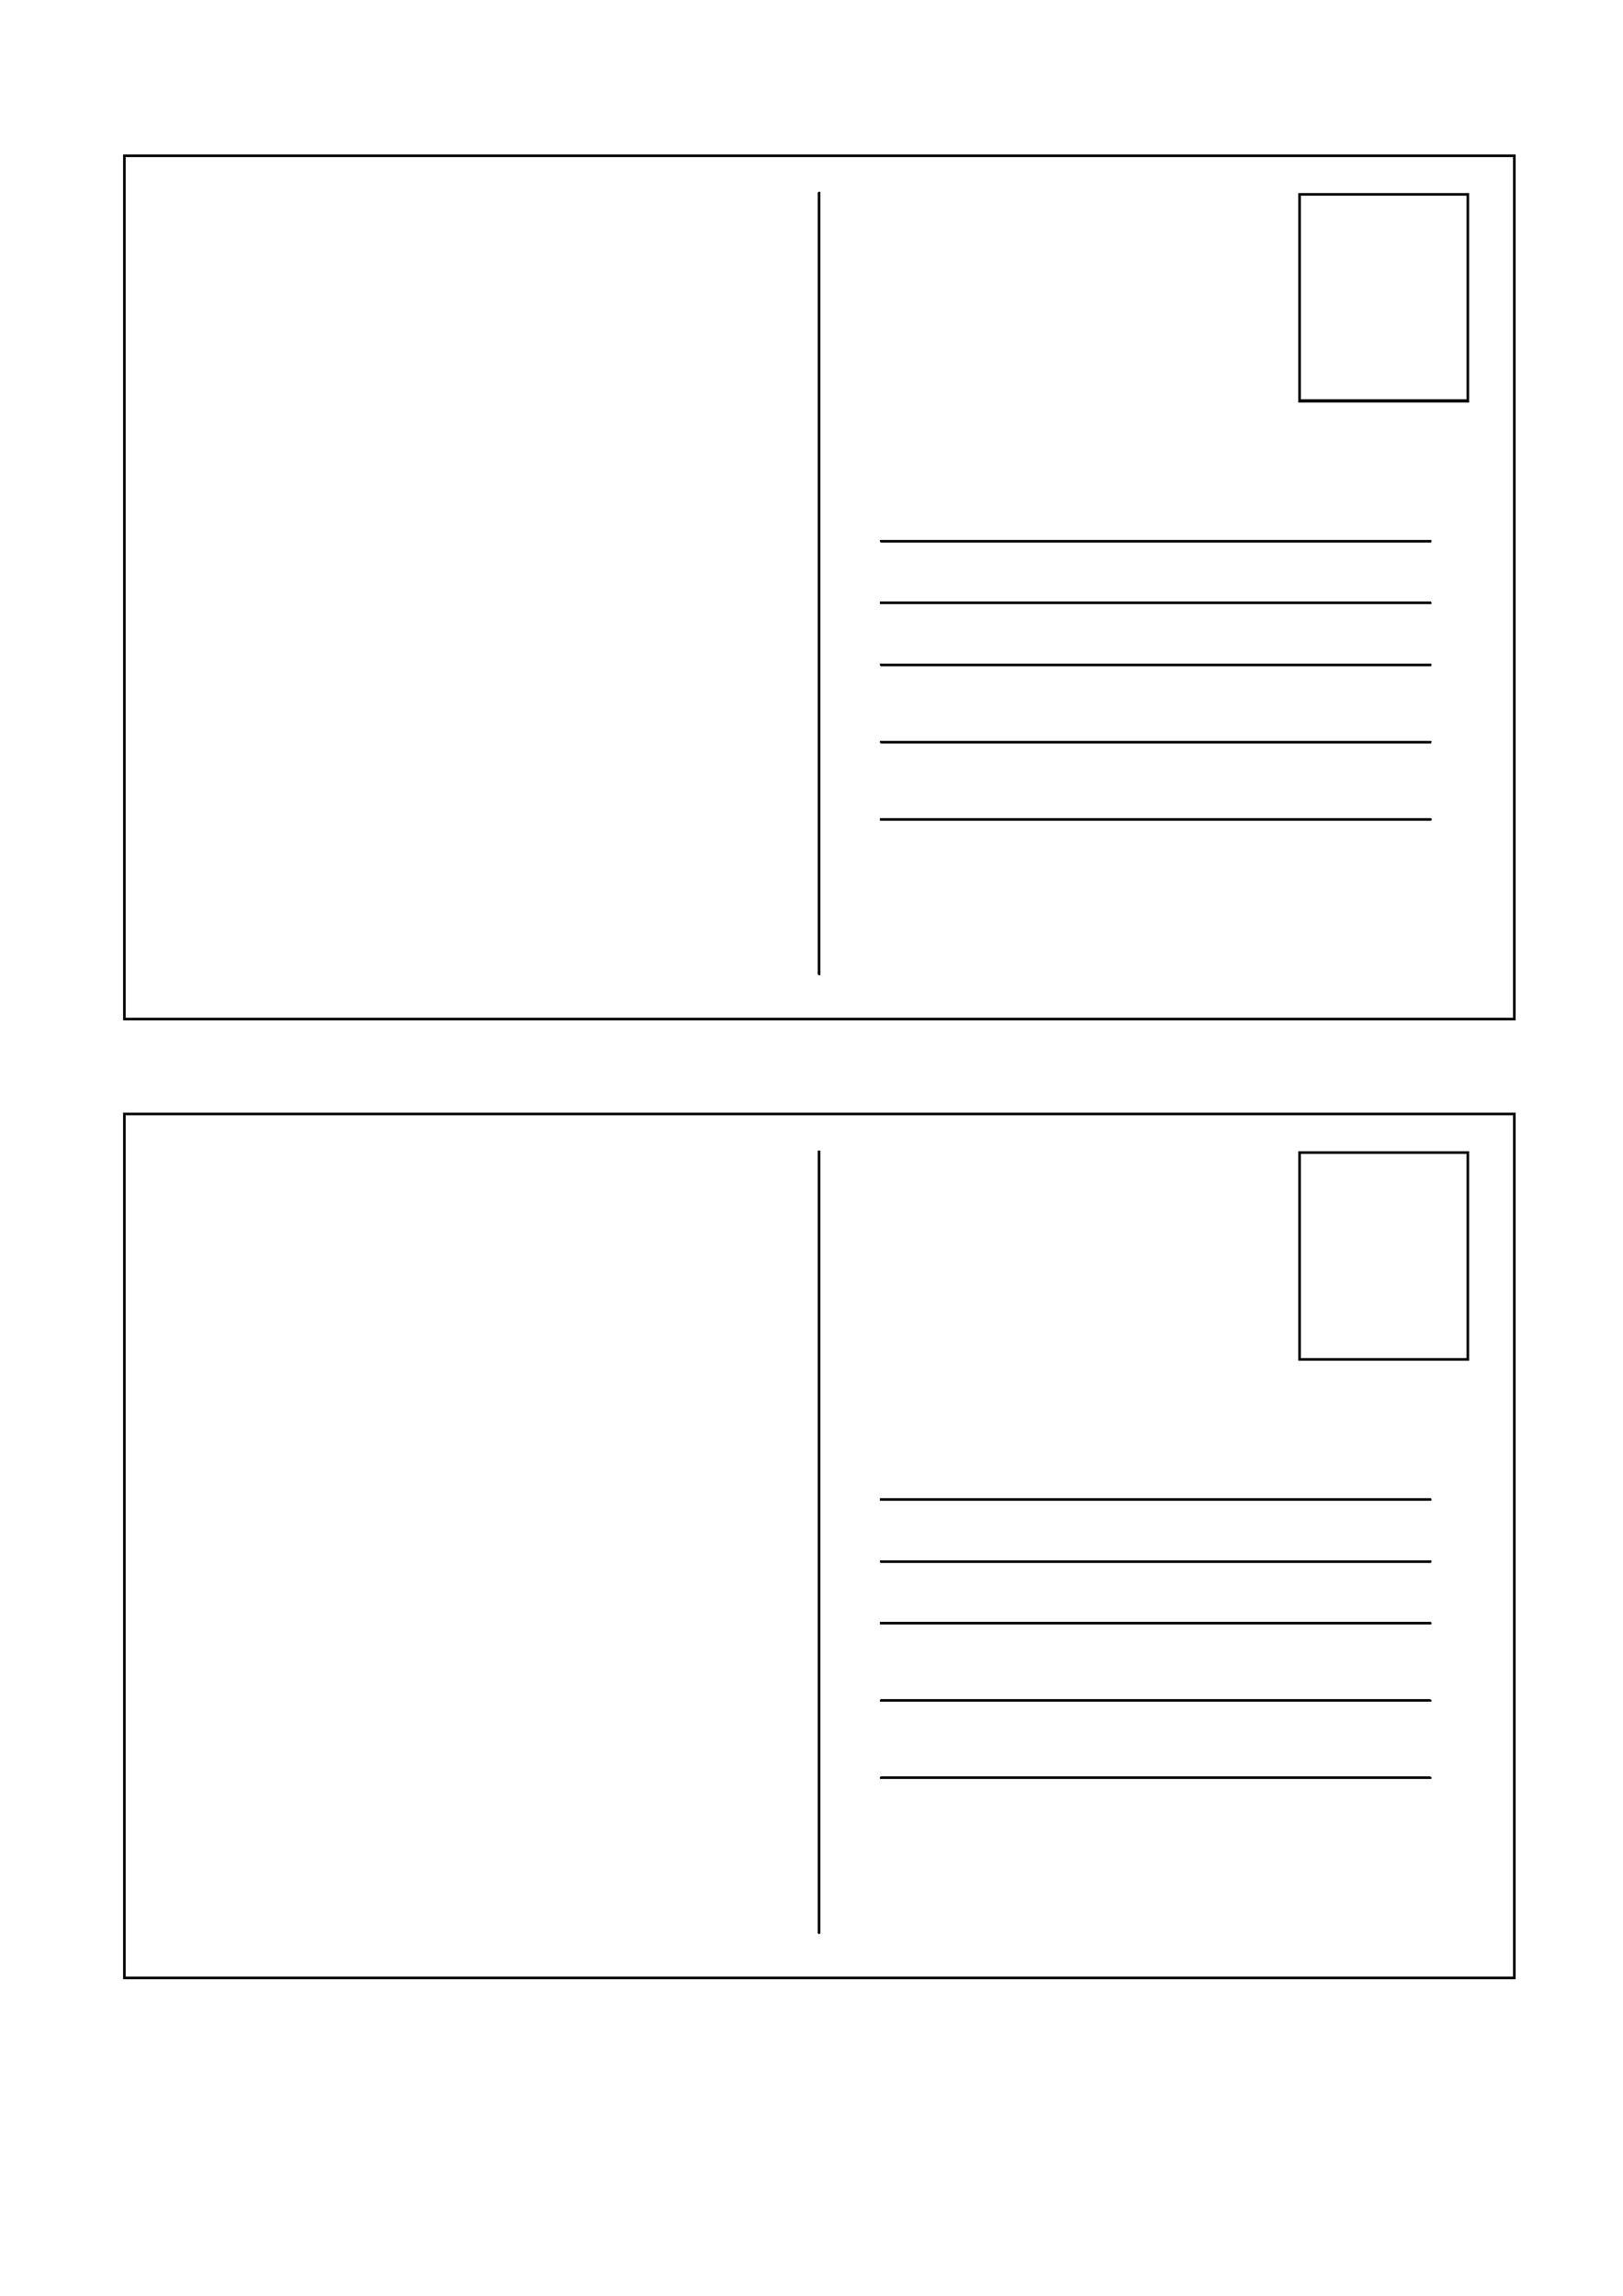 Postcard Template Free Printable 40 Great Postcard Templates & Designs Word  Pdf  Template Lab